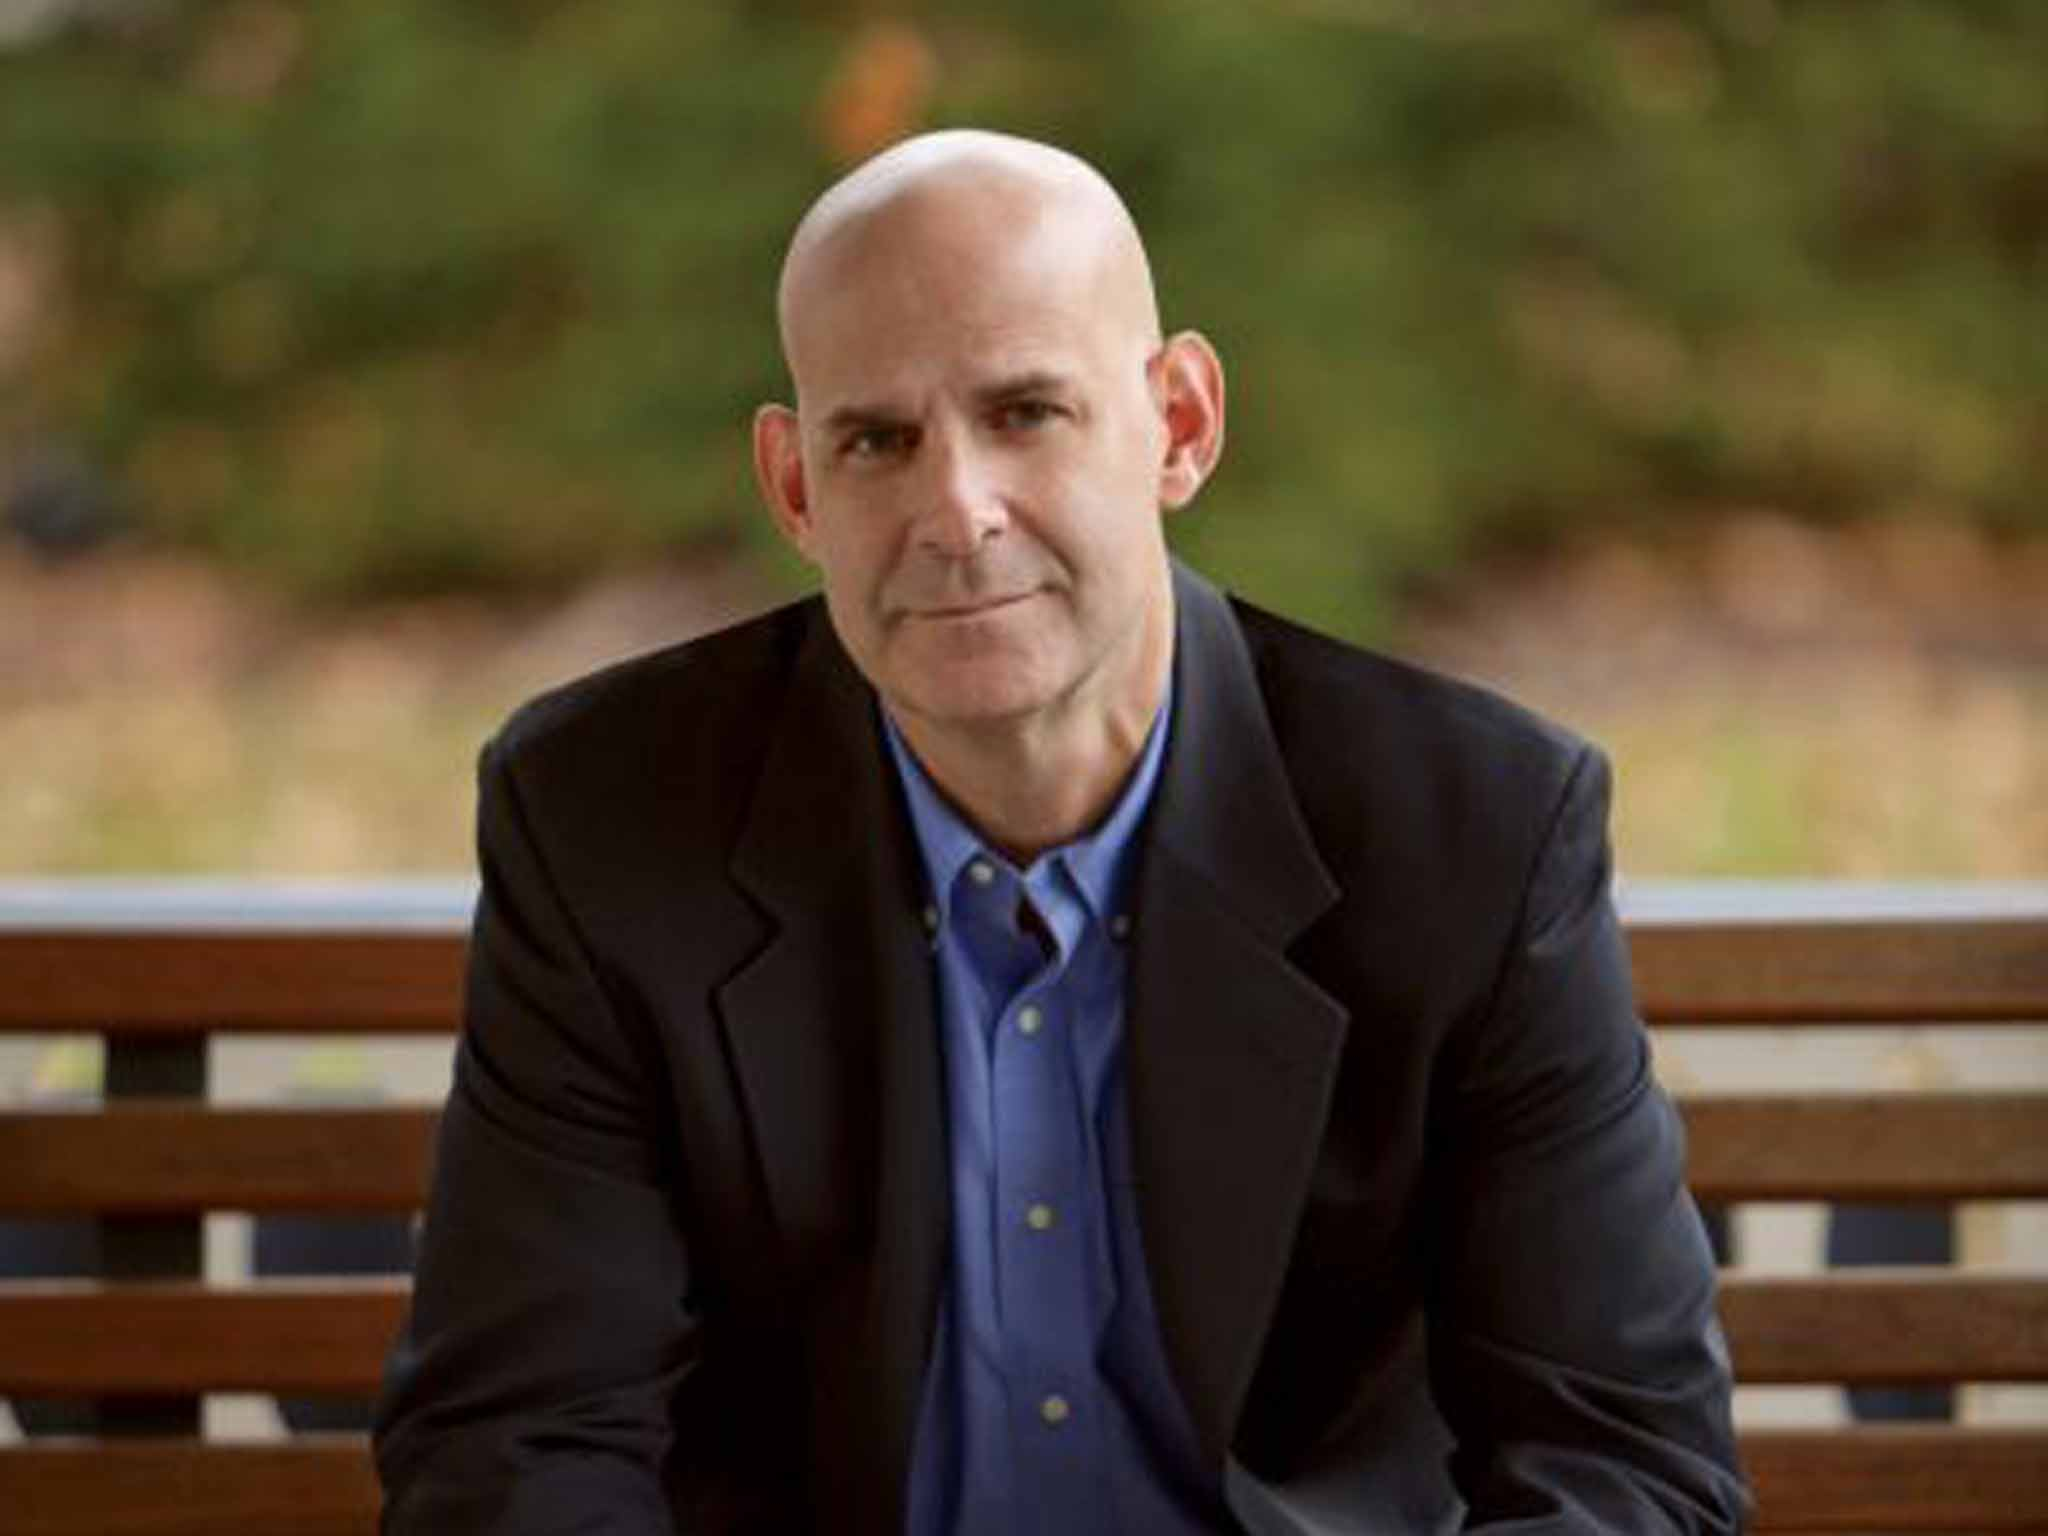 harlan coben on the five for sky his obsessive nature